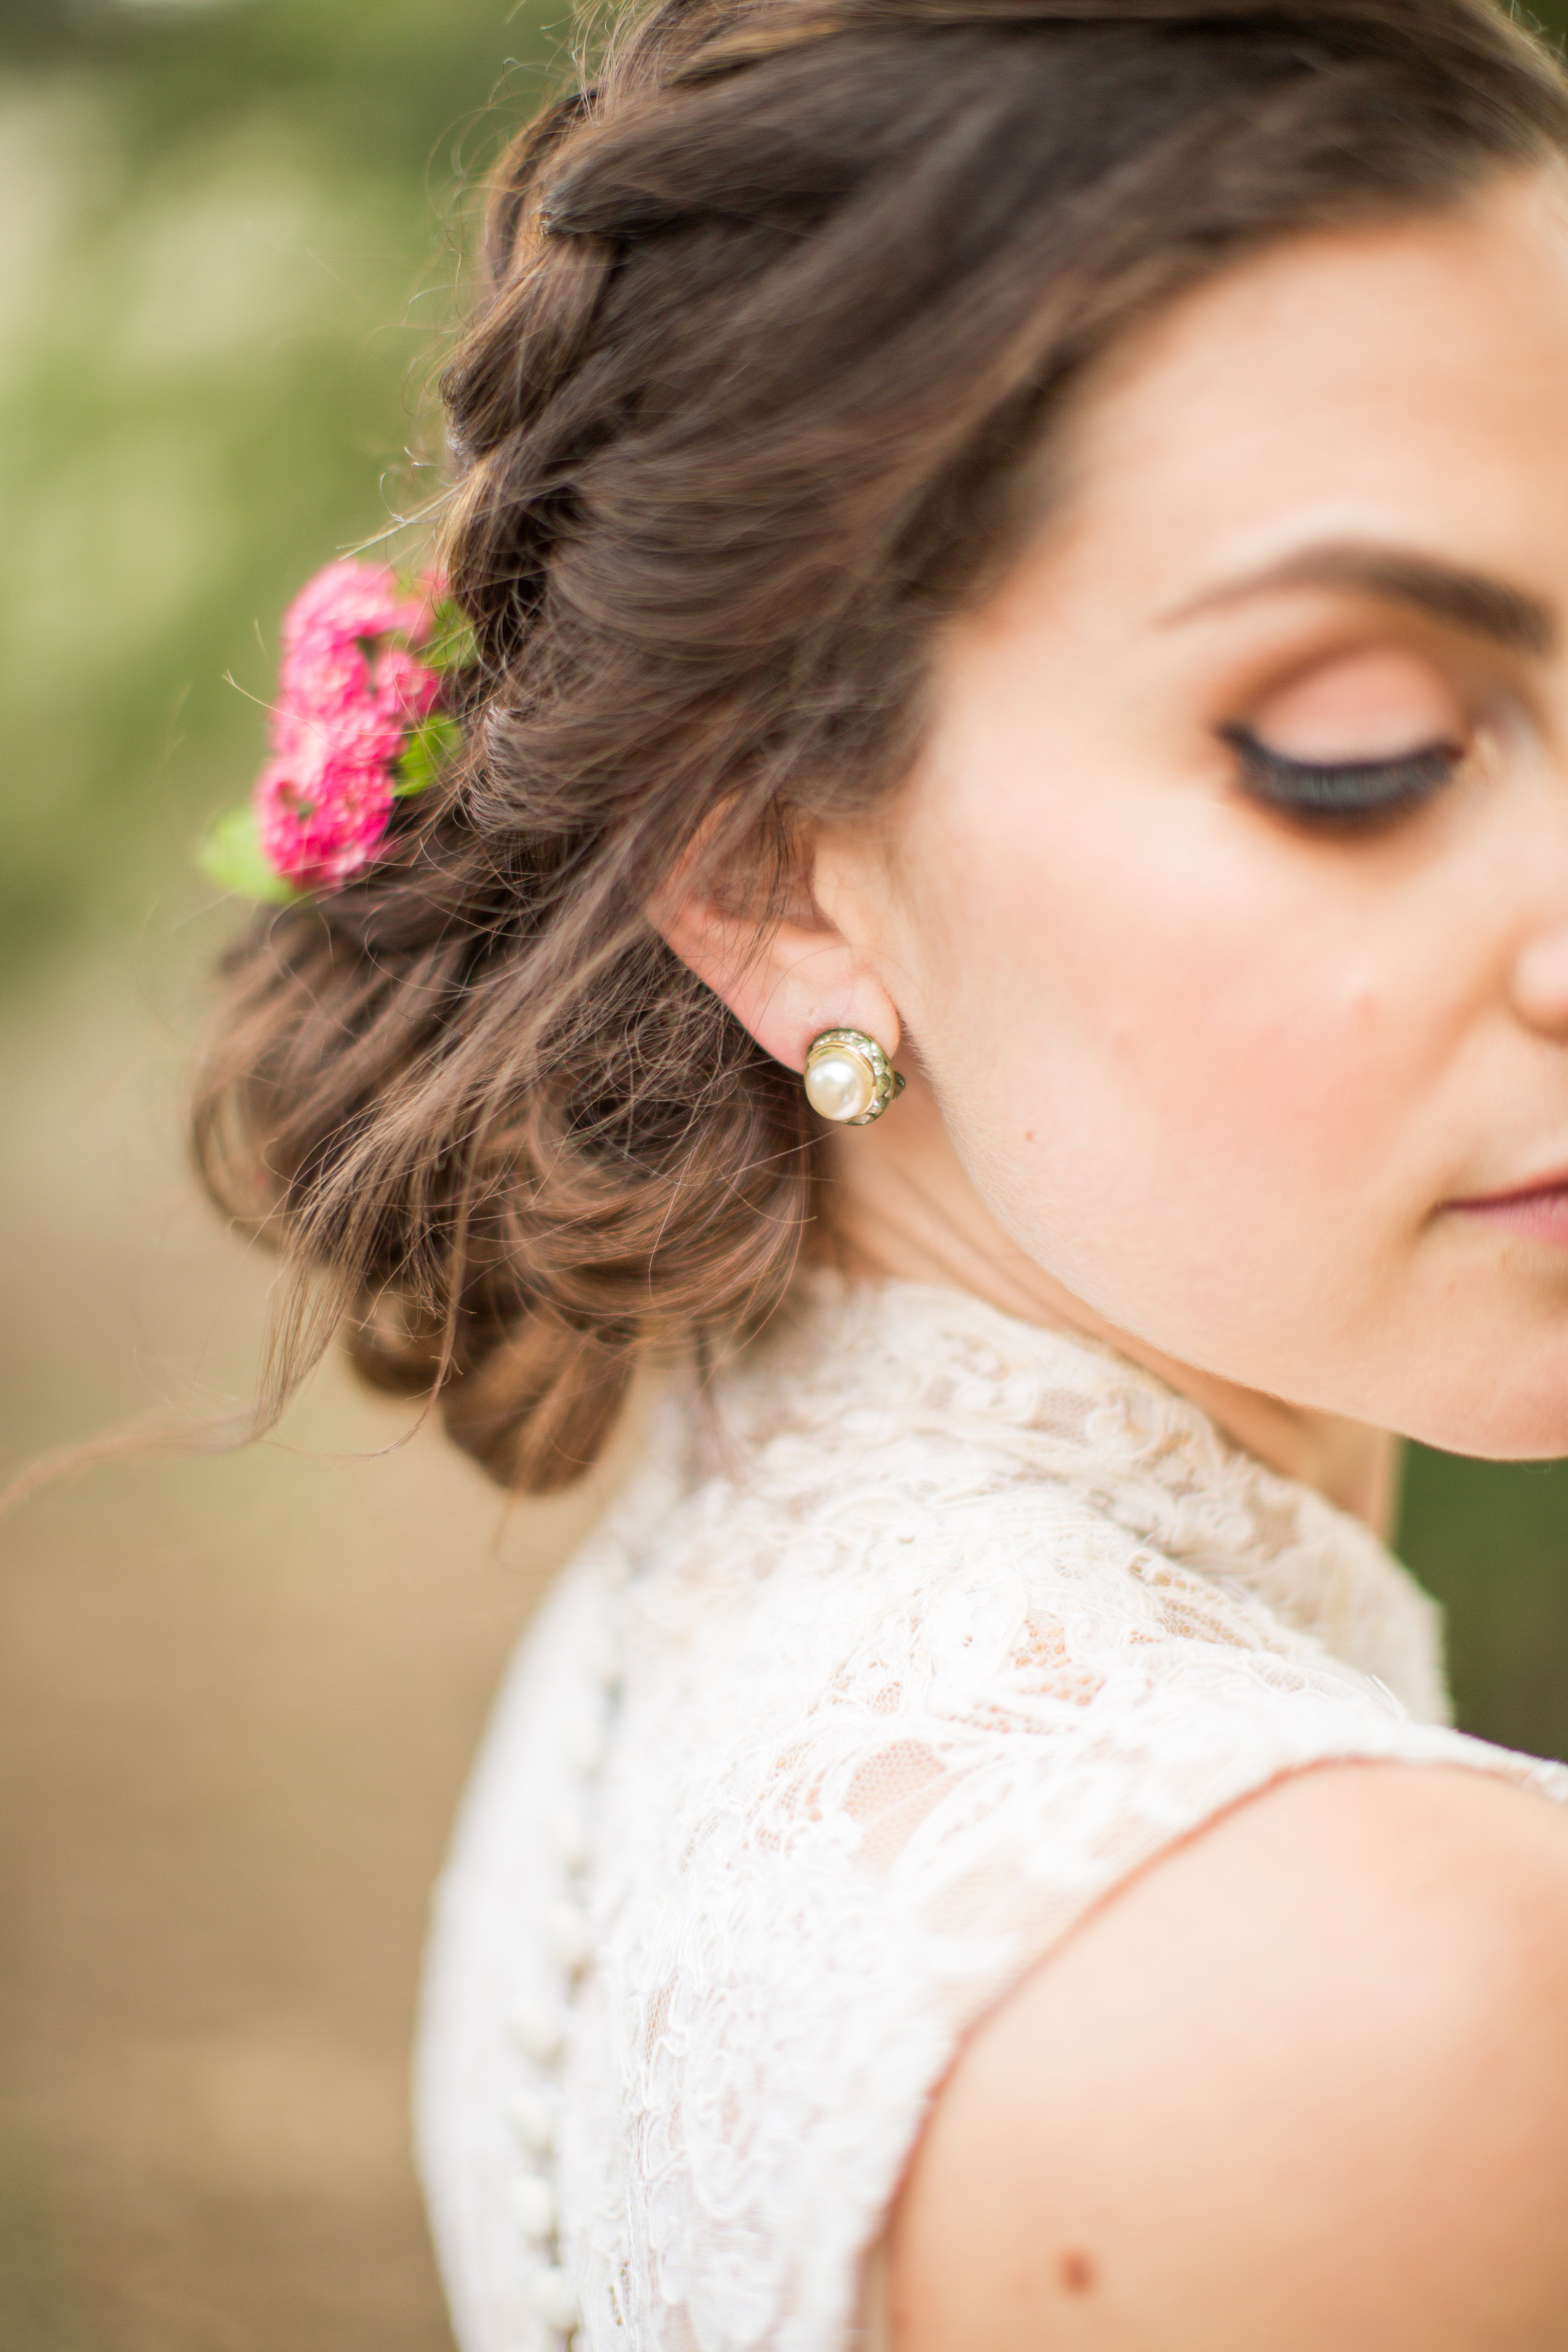 arielle_phil_styled_shoot_finals-45.jpg